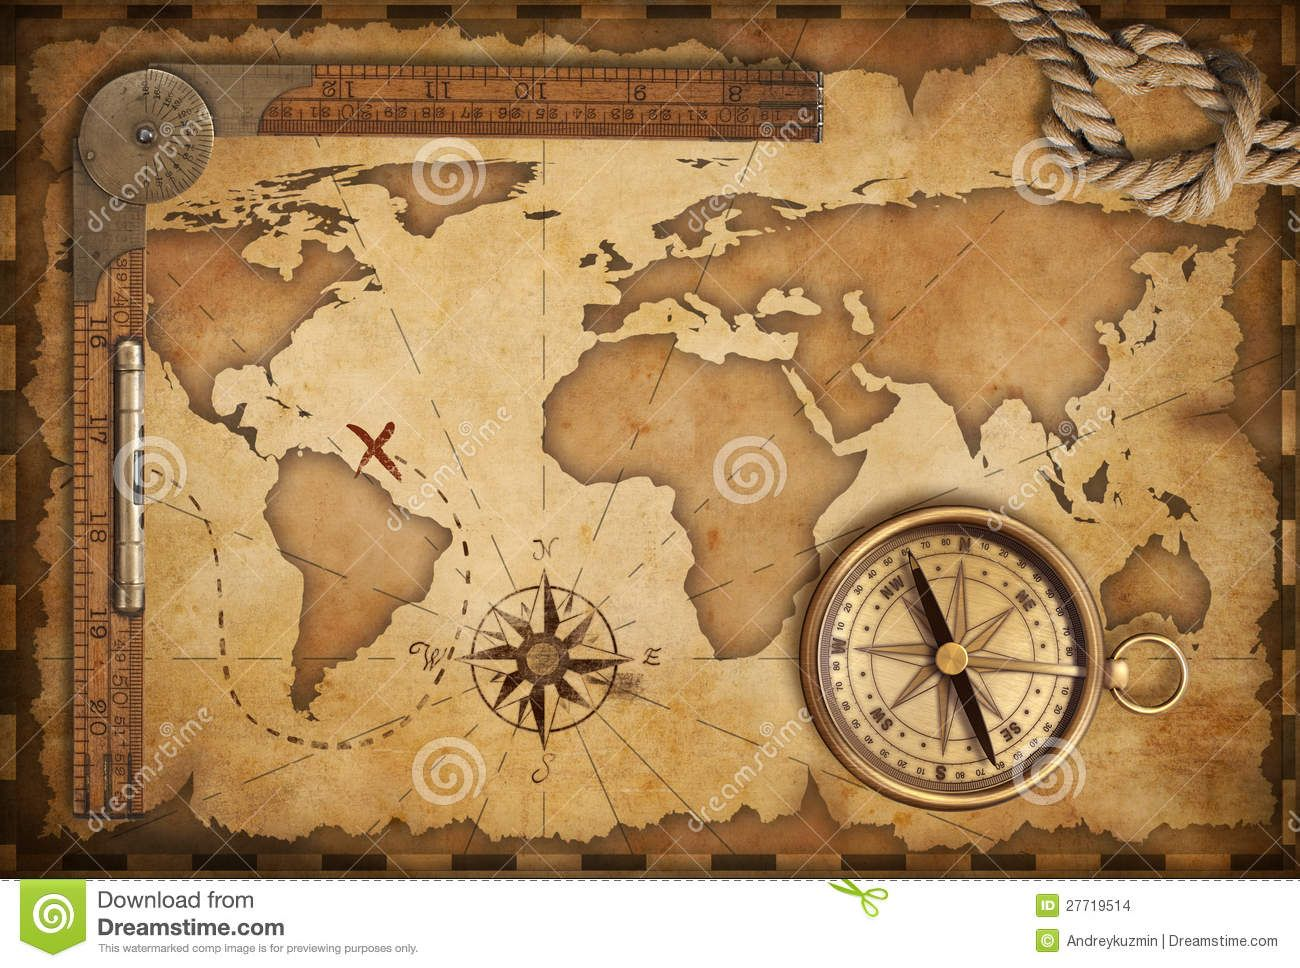 Related image pirates treasure etc ppic pinterest pirate aged brass antique nautical compass and old map with track on it gumiabroncs Images